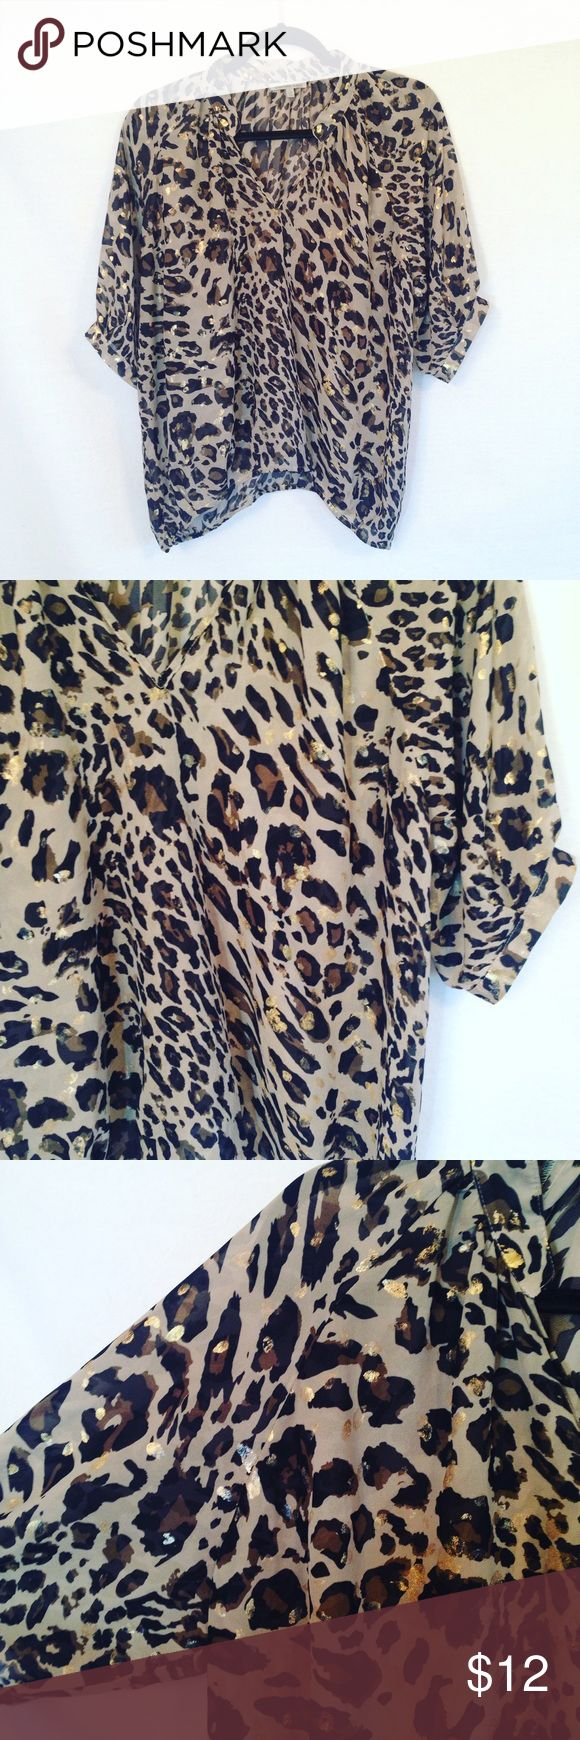 """Charlotte Russe leopard metallic blouse Great leopard print top from charlotte russe. Sheer tan, black and metallic gold blouse. 3/4 sleeves. Banded at the bottom. Longer in the back. Good used condition.     armpit to armpit: approx 25.5"""" length: approx 23"""" (longer in the back) Charlotte Russe Tops Blouses"""